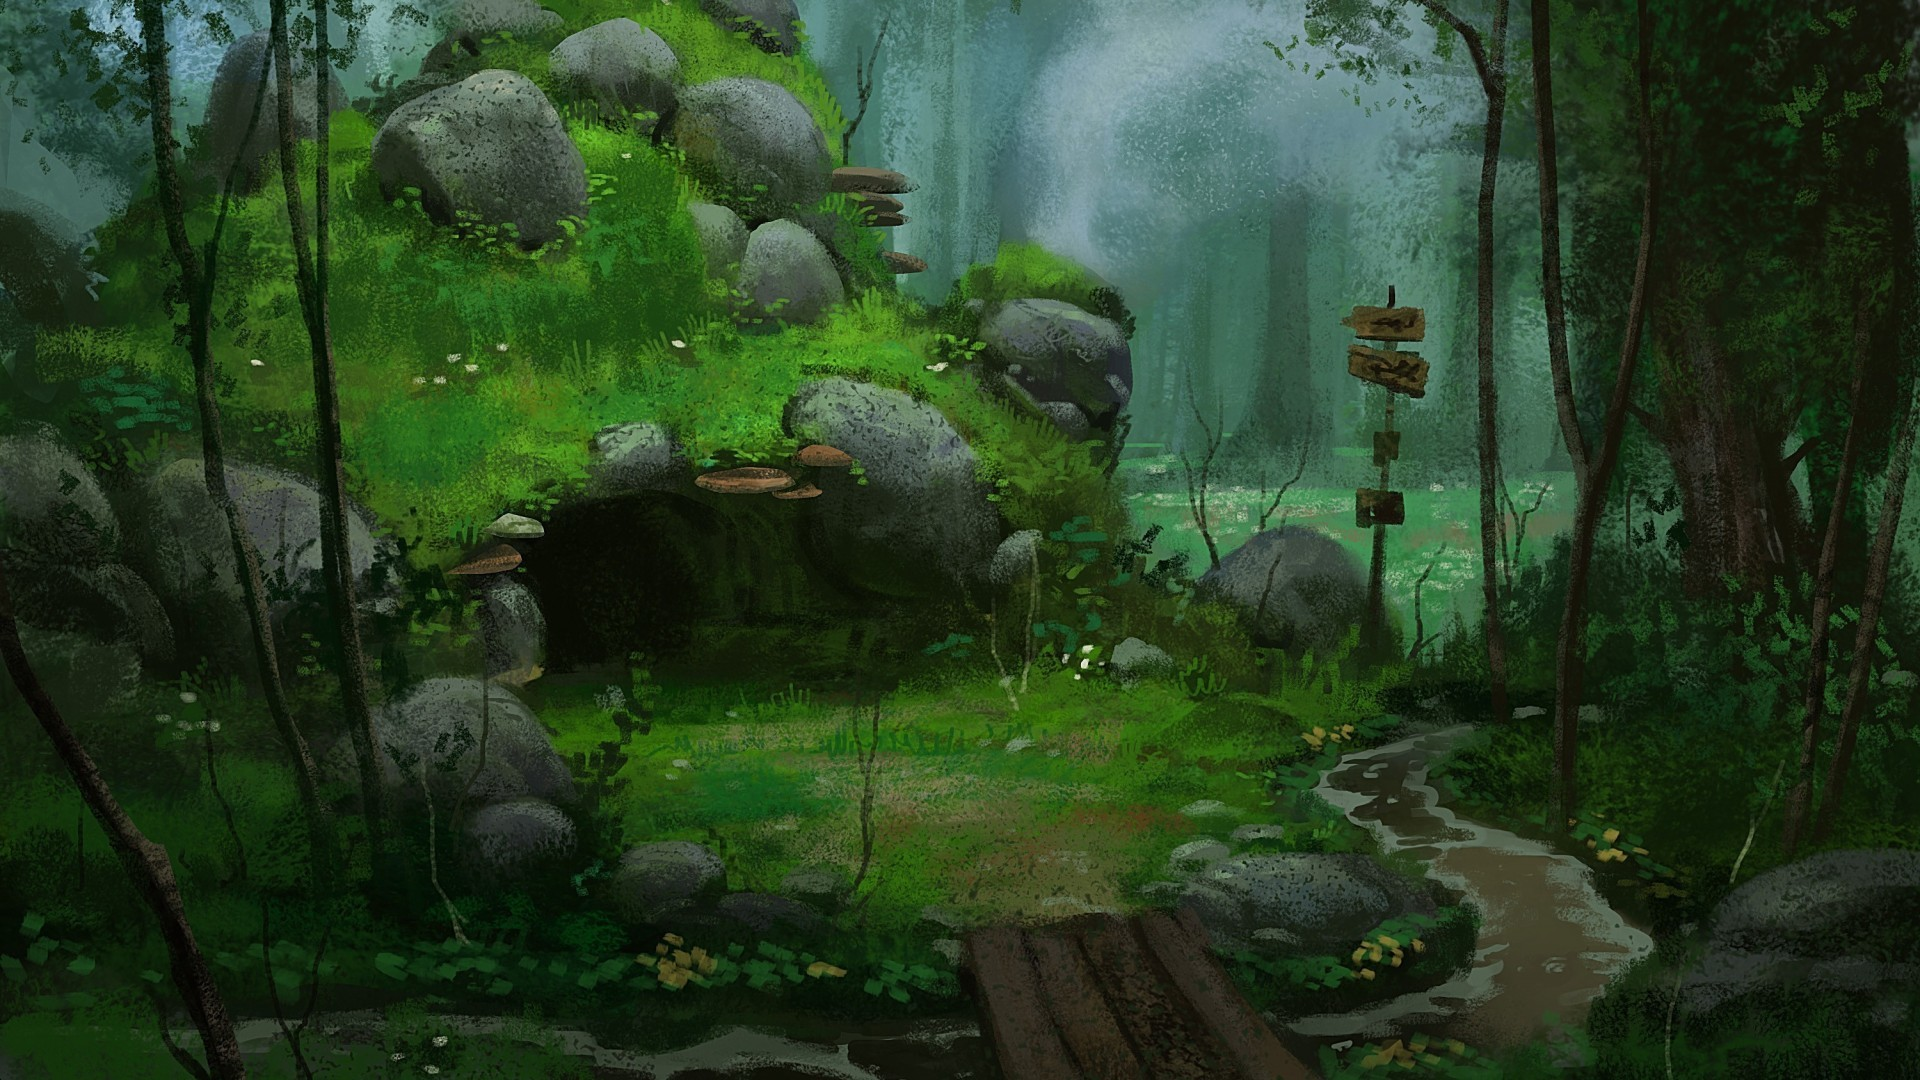 Anime Forest Background wallpaper